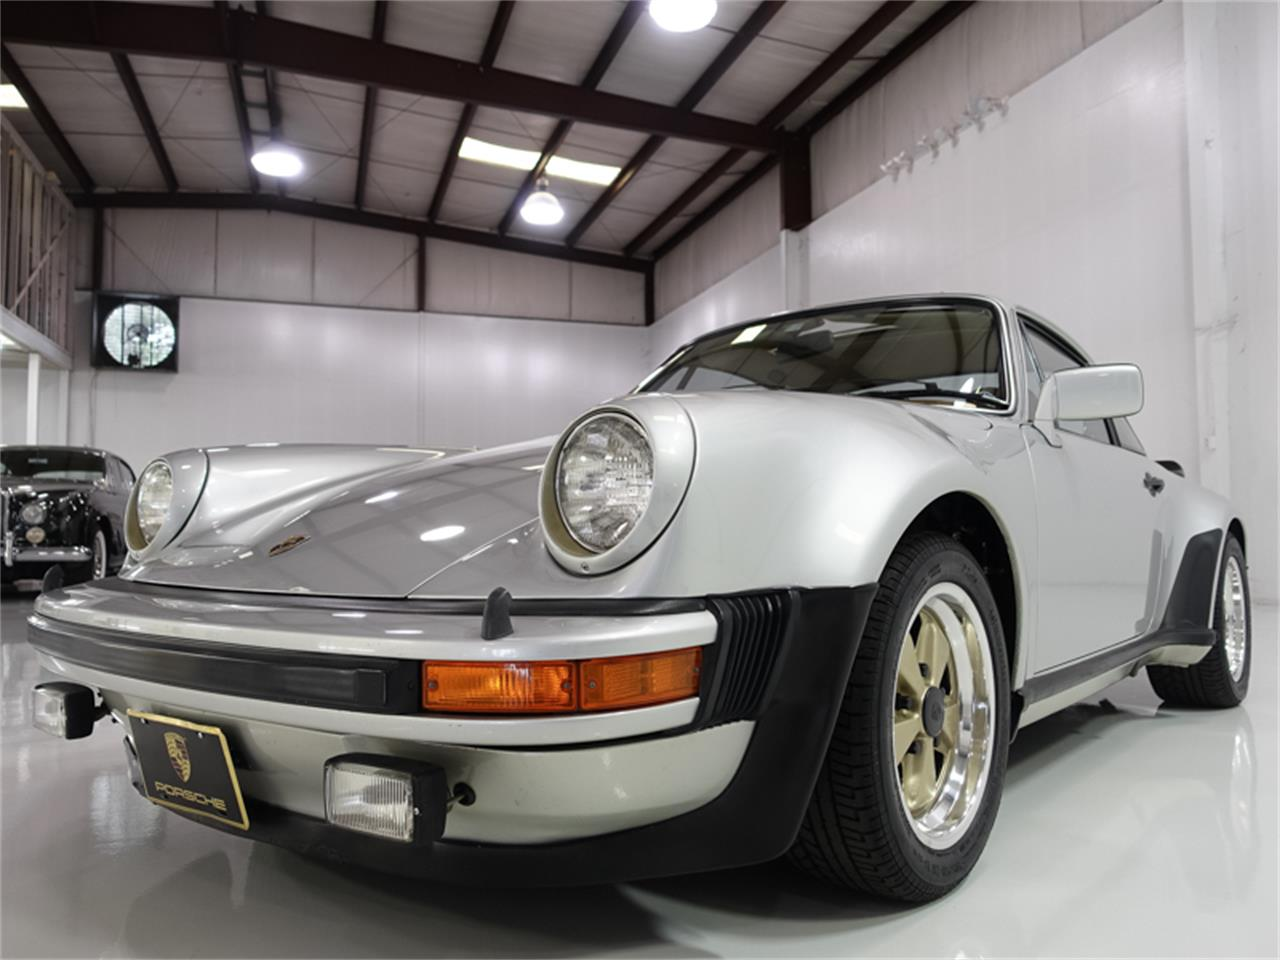 Large Picture of '76 Porsche 930 Turbo located in Missouri Offered by Daniel Schmitt & Co. - FXKC